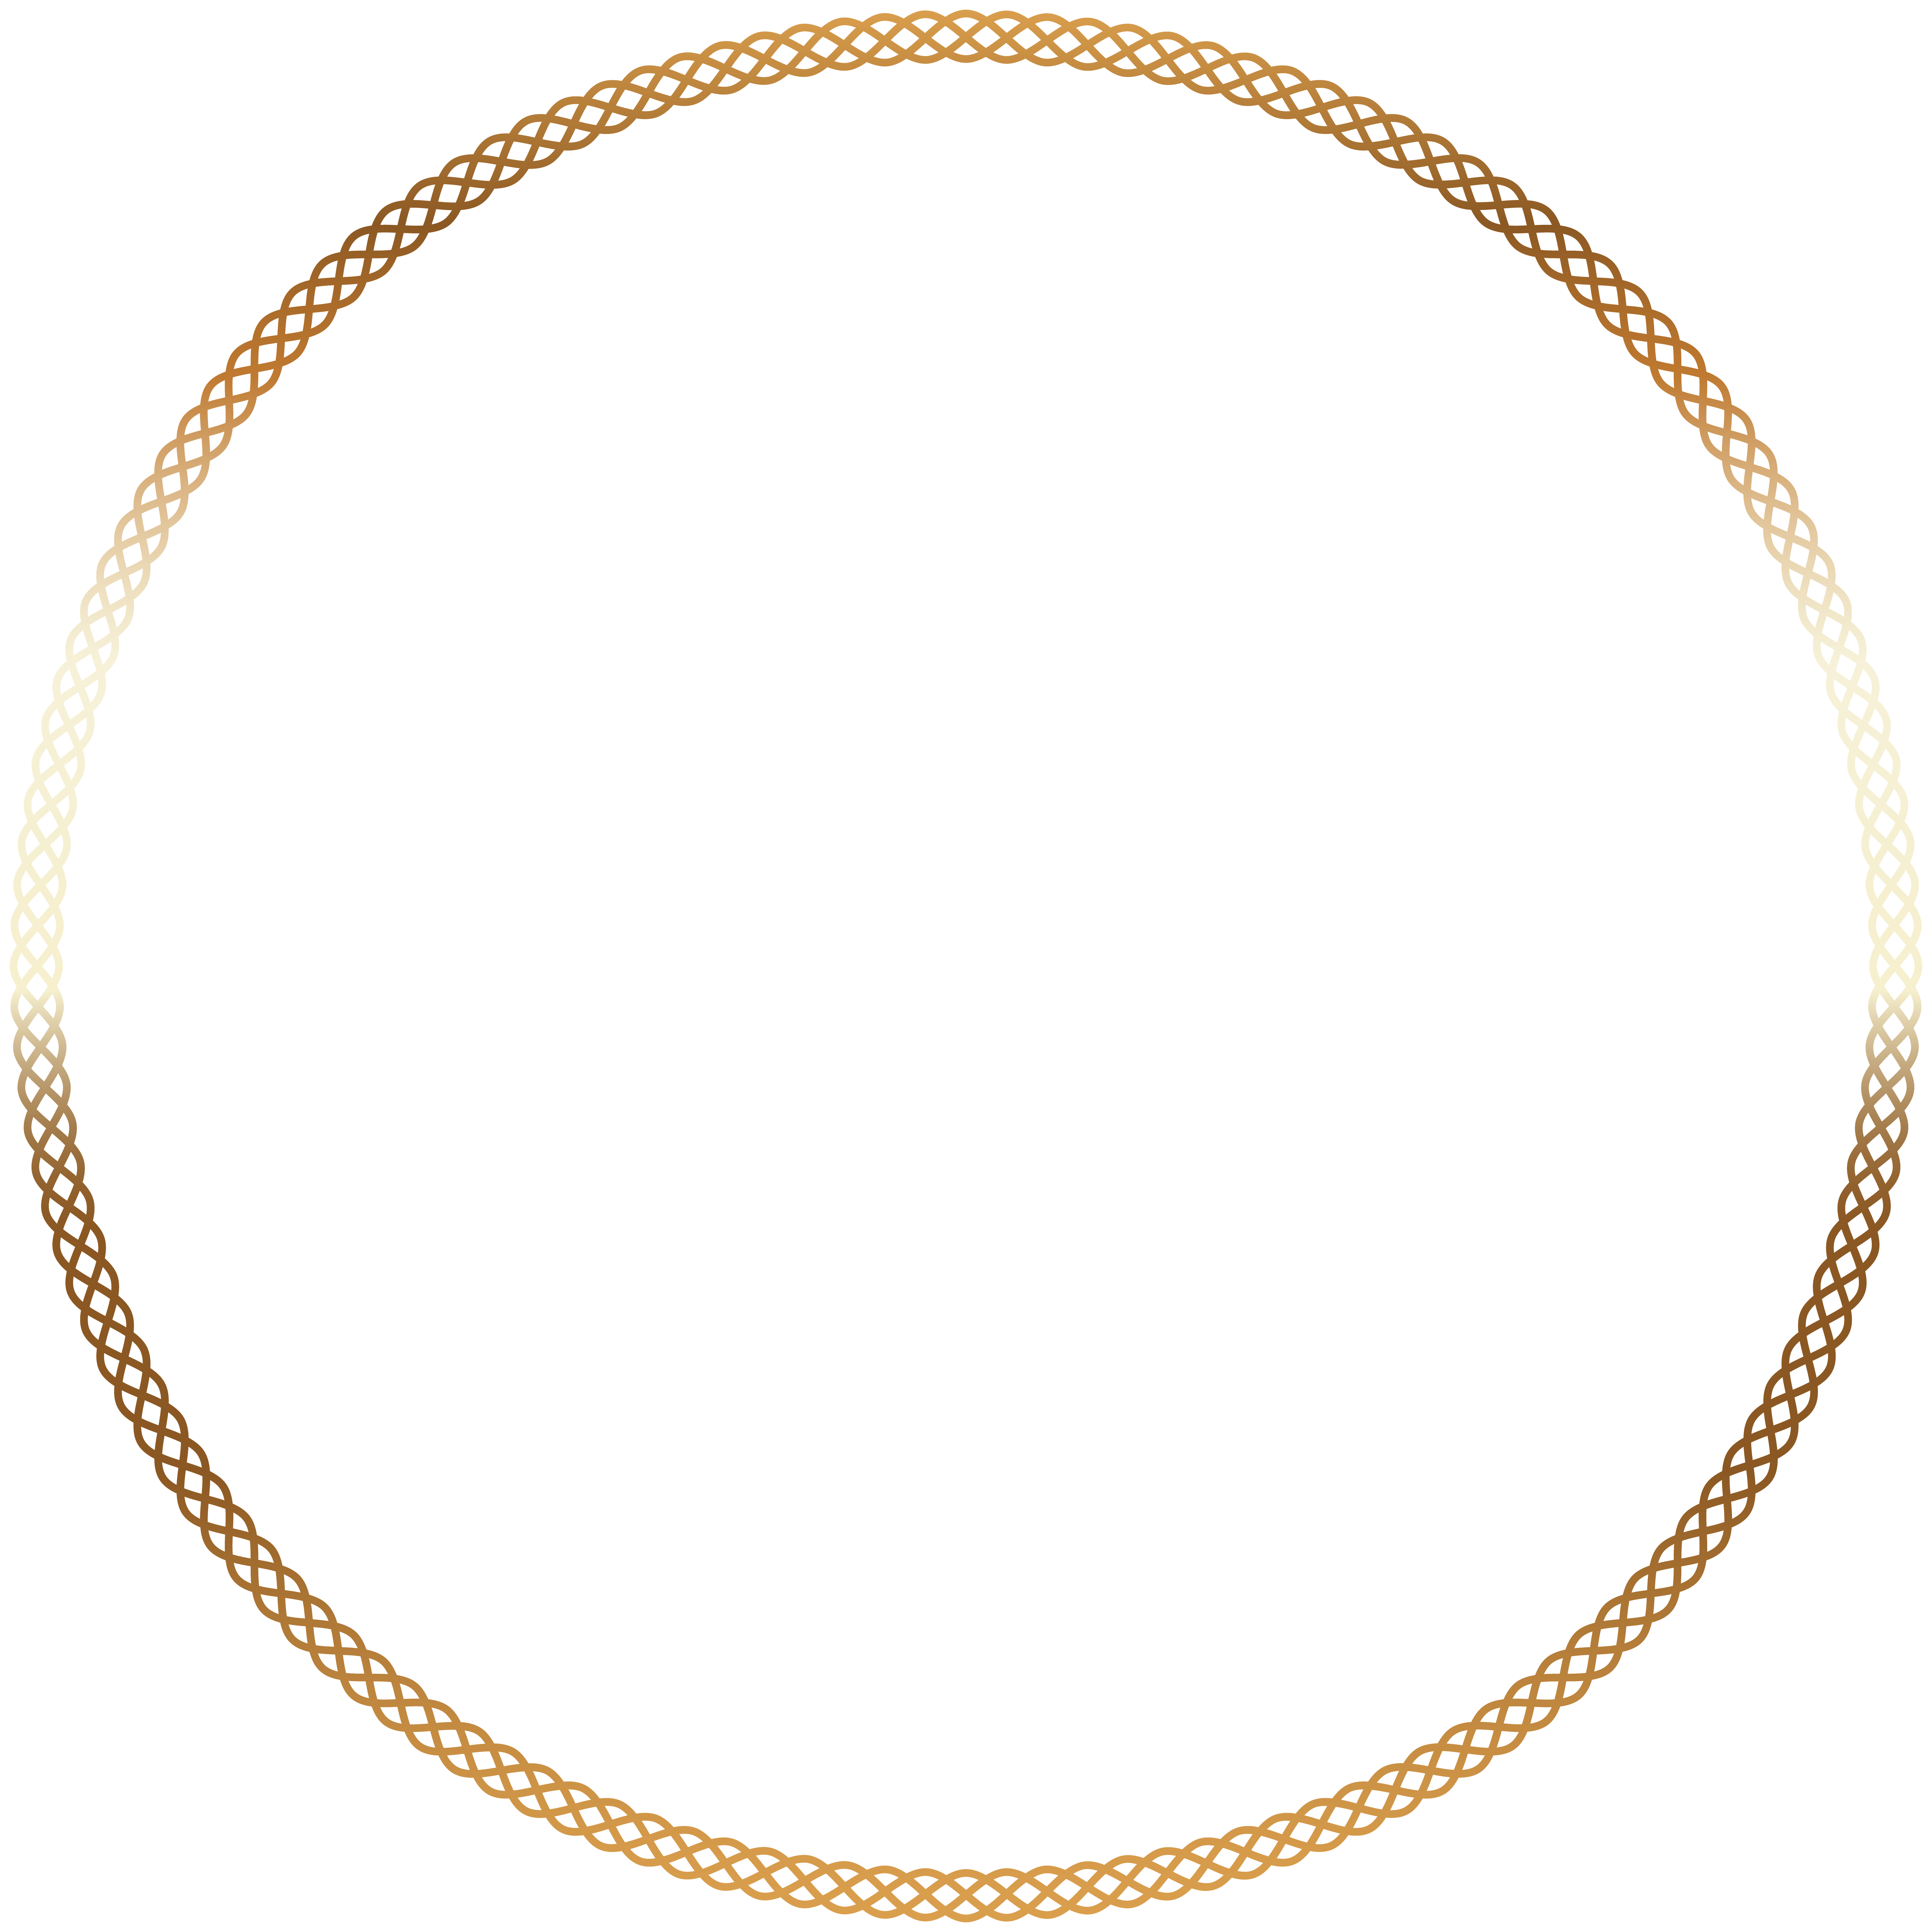 clipart royalty free library Art deco clipart. Round border frame png